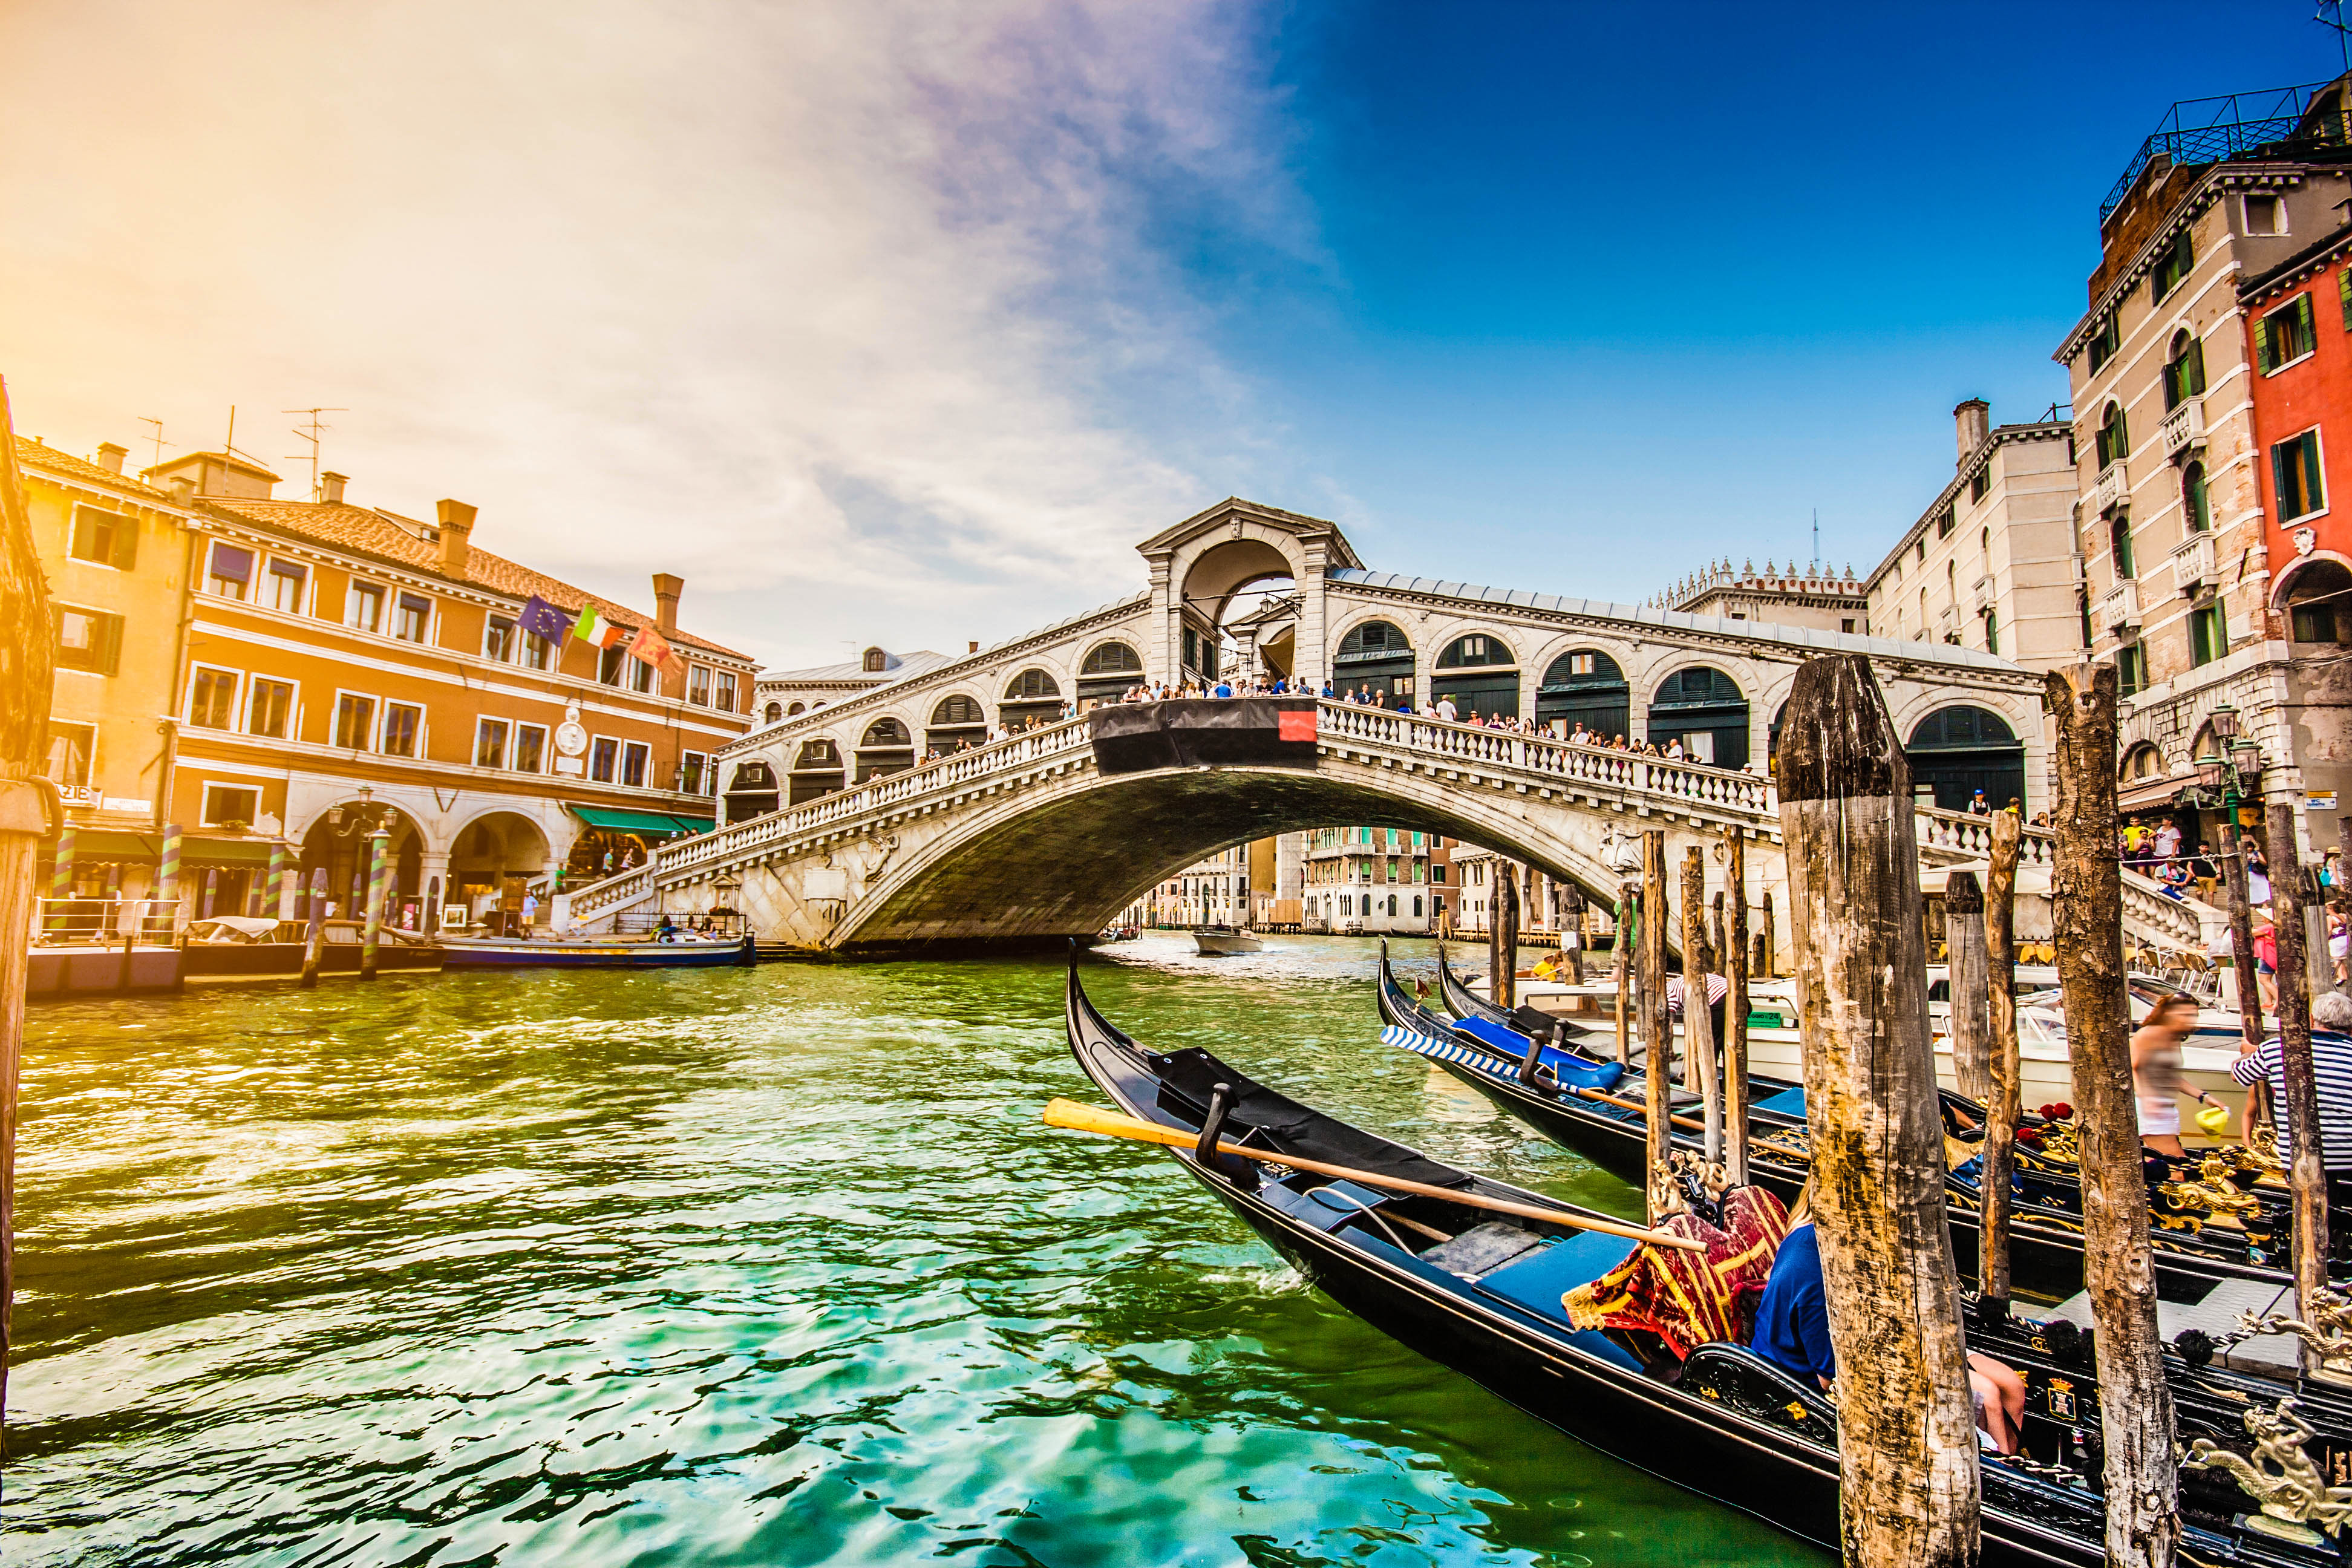 Panoramic view of famous Canal Grande with famous Rialto Bridge at sunset in Venice, Italy with retro vintage Instagram style filter effect